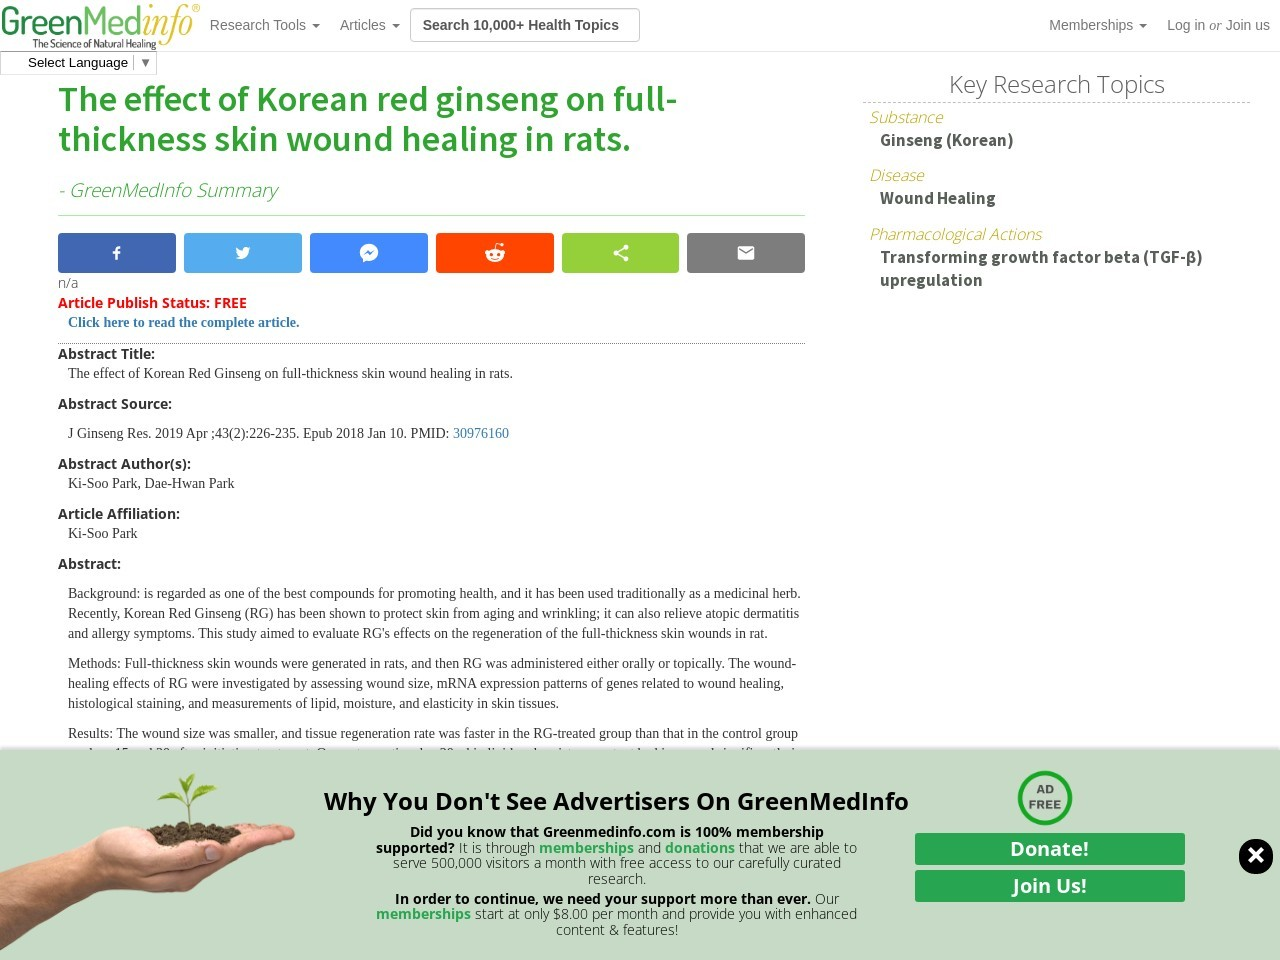 The effect of Korean red ginseng on full-thickness skin wound healing in rats.